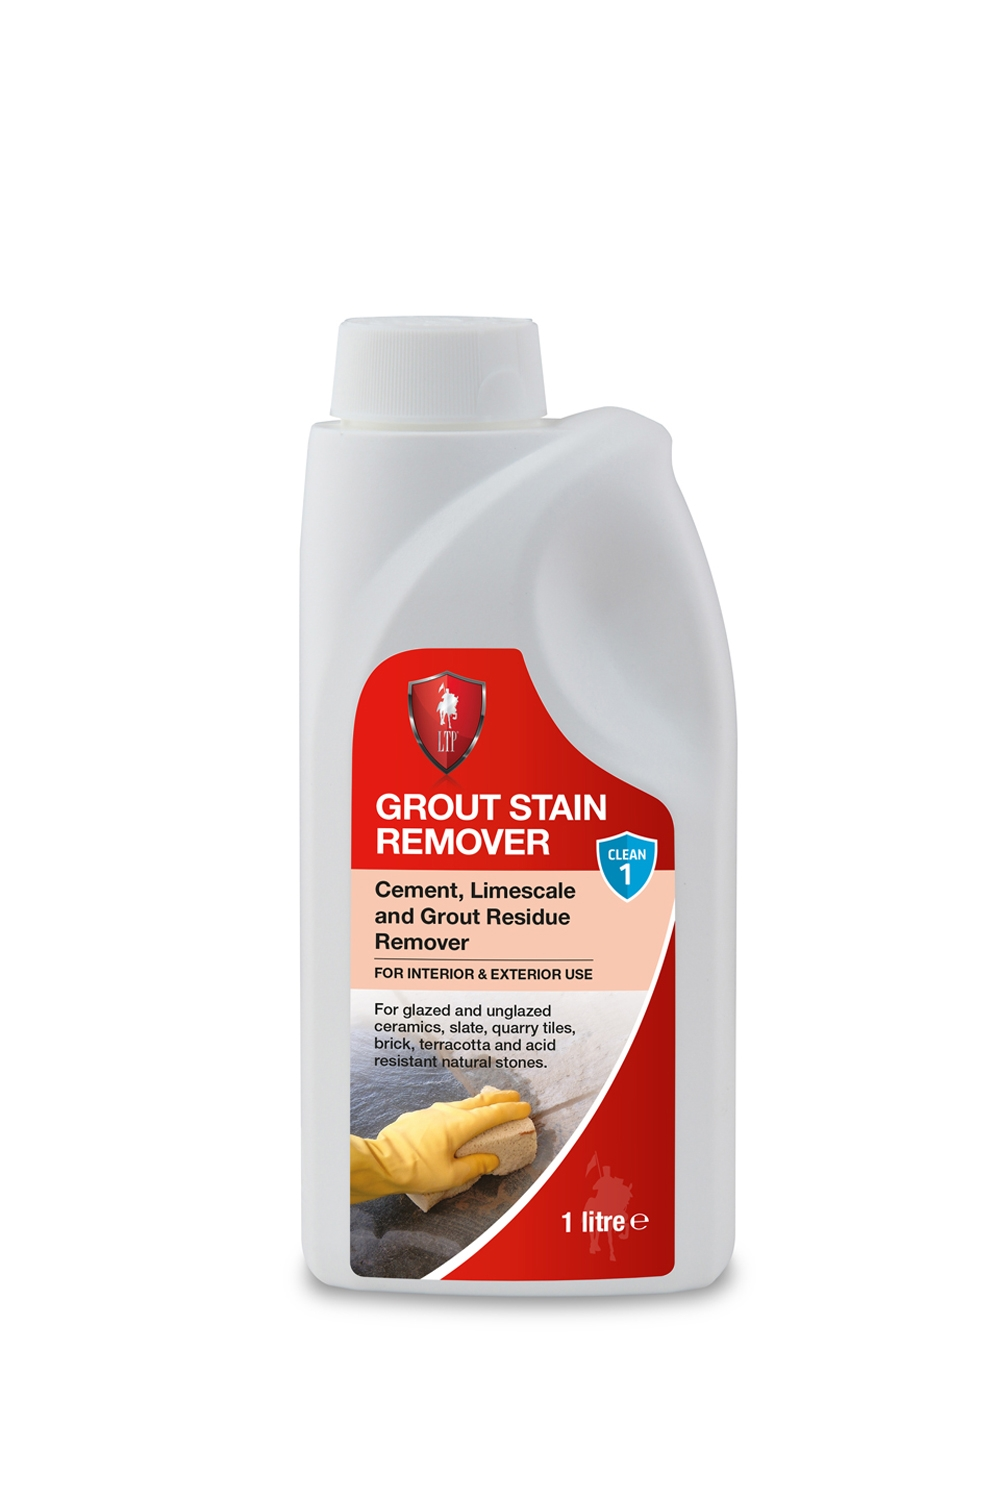 LTP Tile Grout Stain Remover